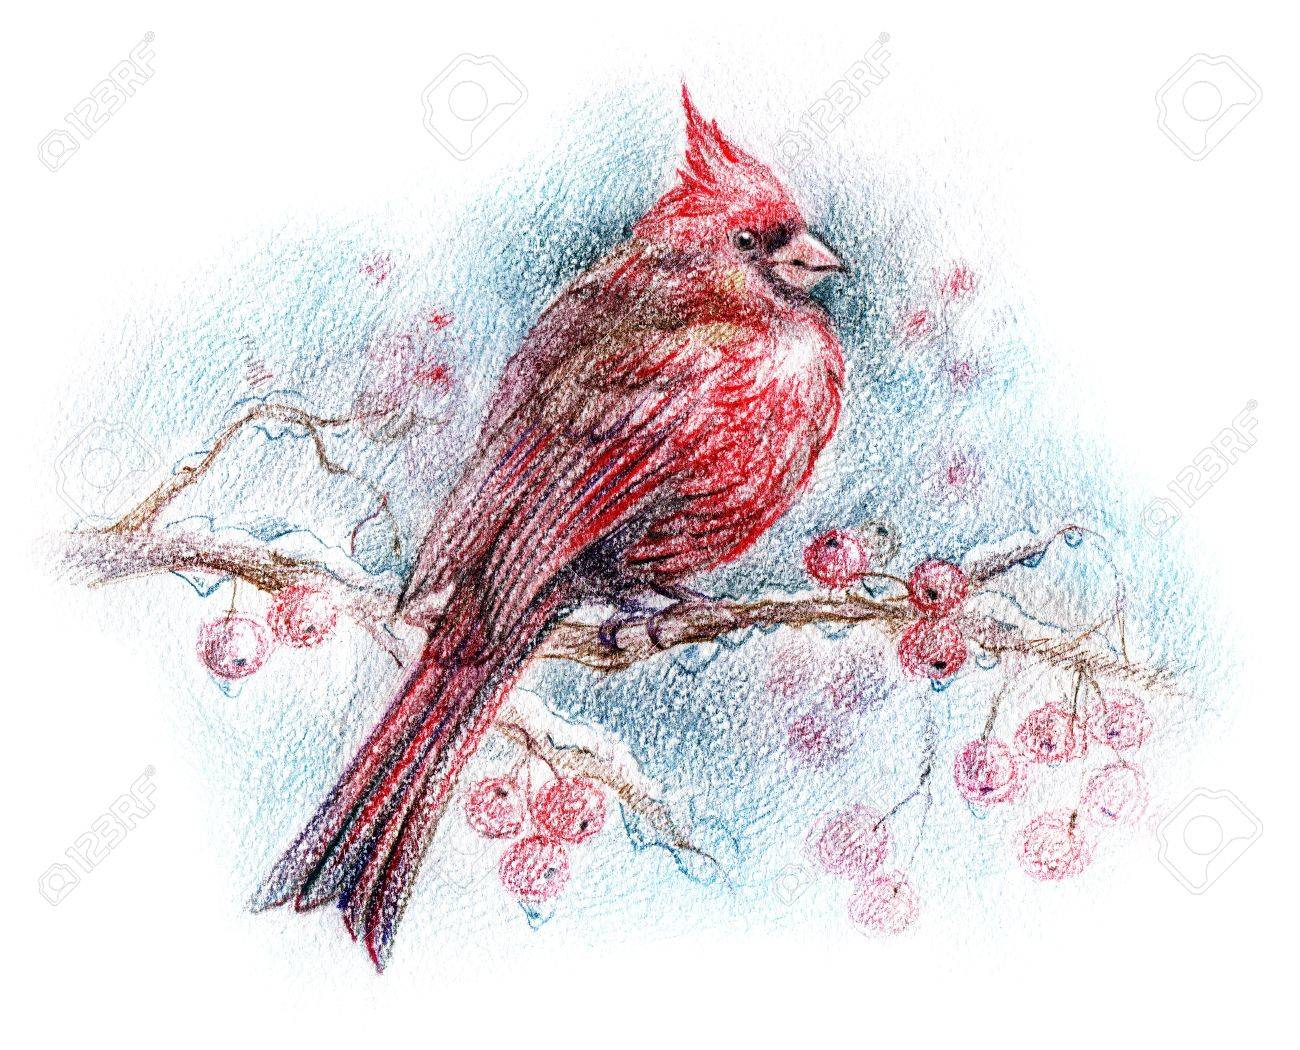 1300x1050 Red Bird On A Branch Drawing Stock Photo, Picture And Royalty Free